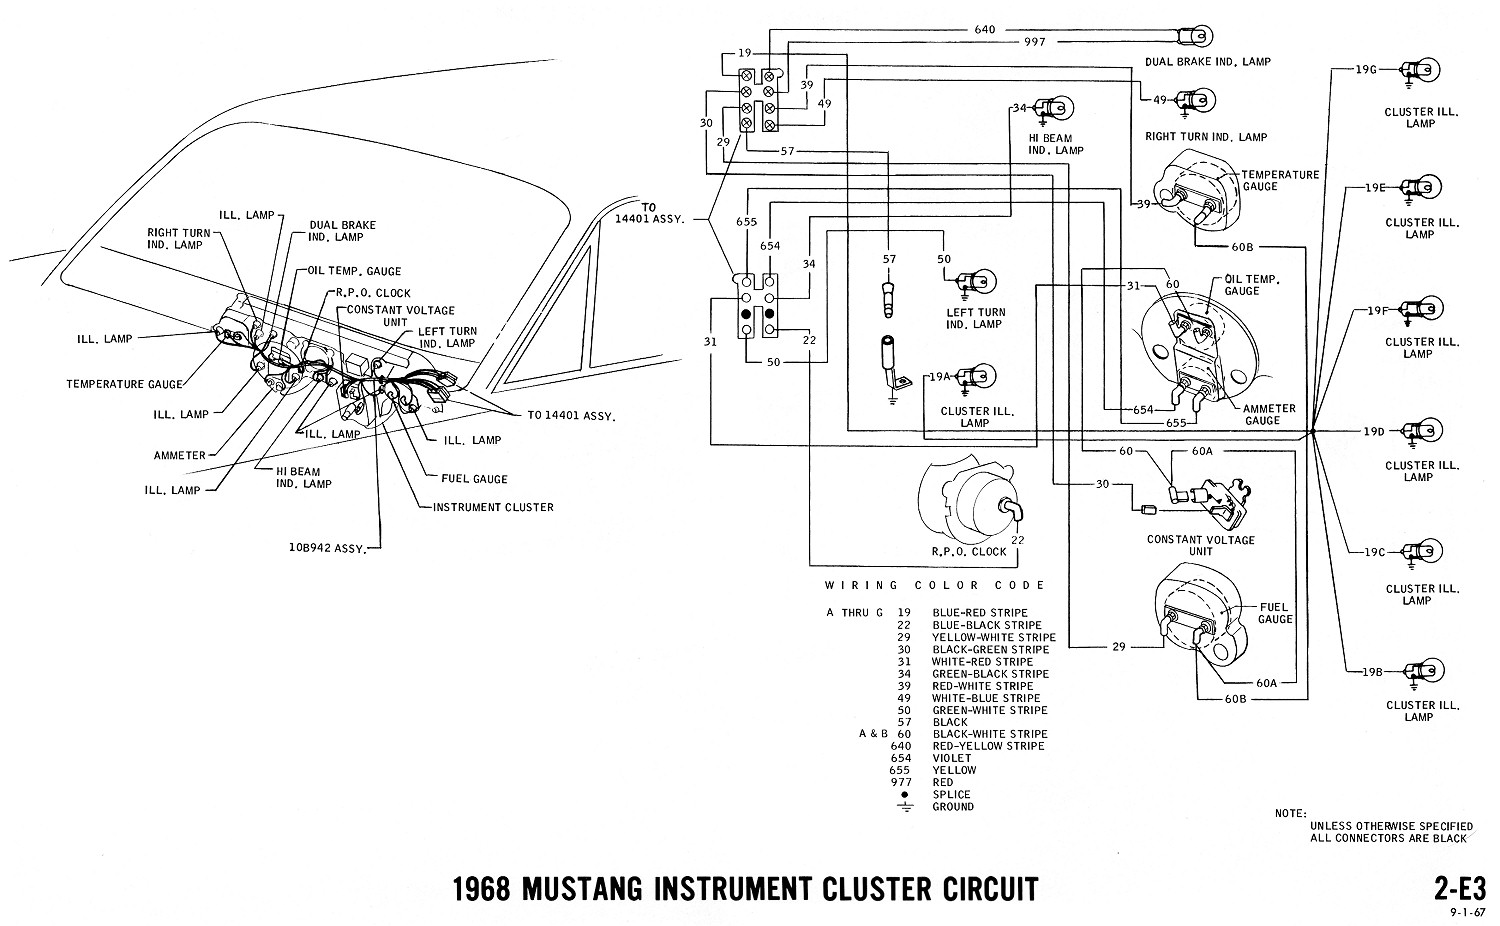 79 chevy truck fuse box diagram 69 chevy truck fuse box diagram